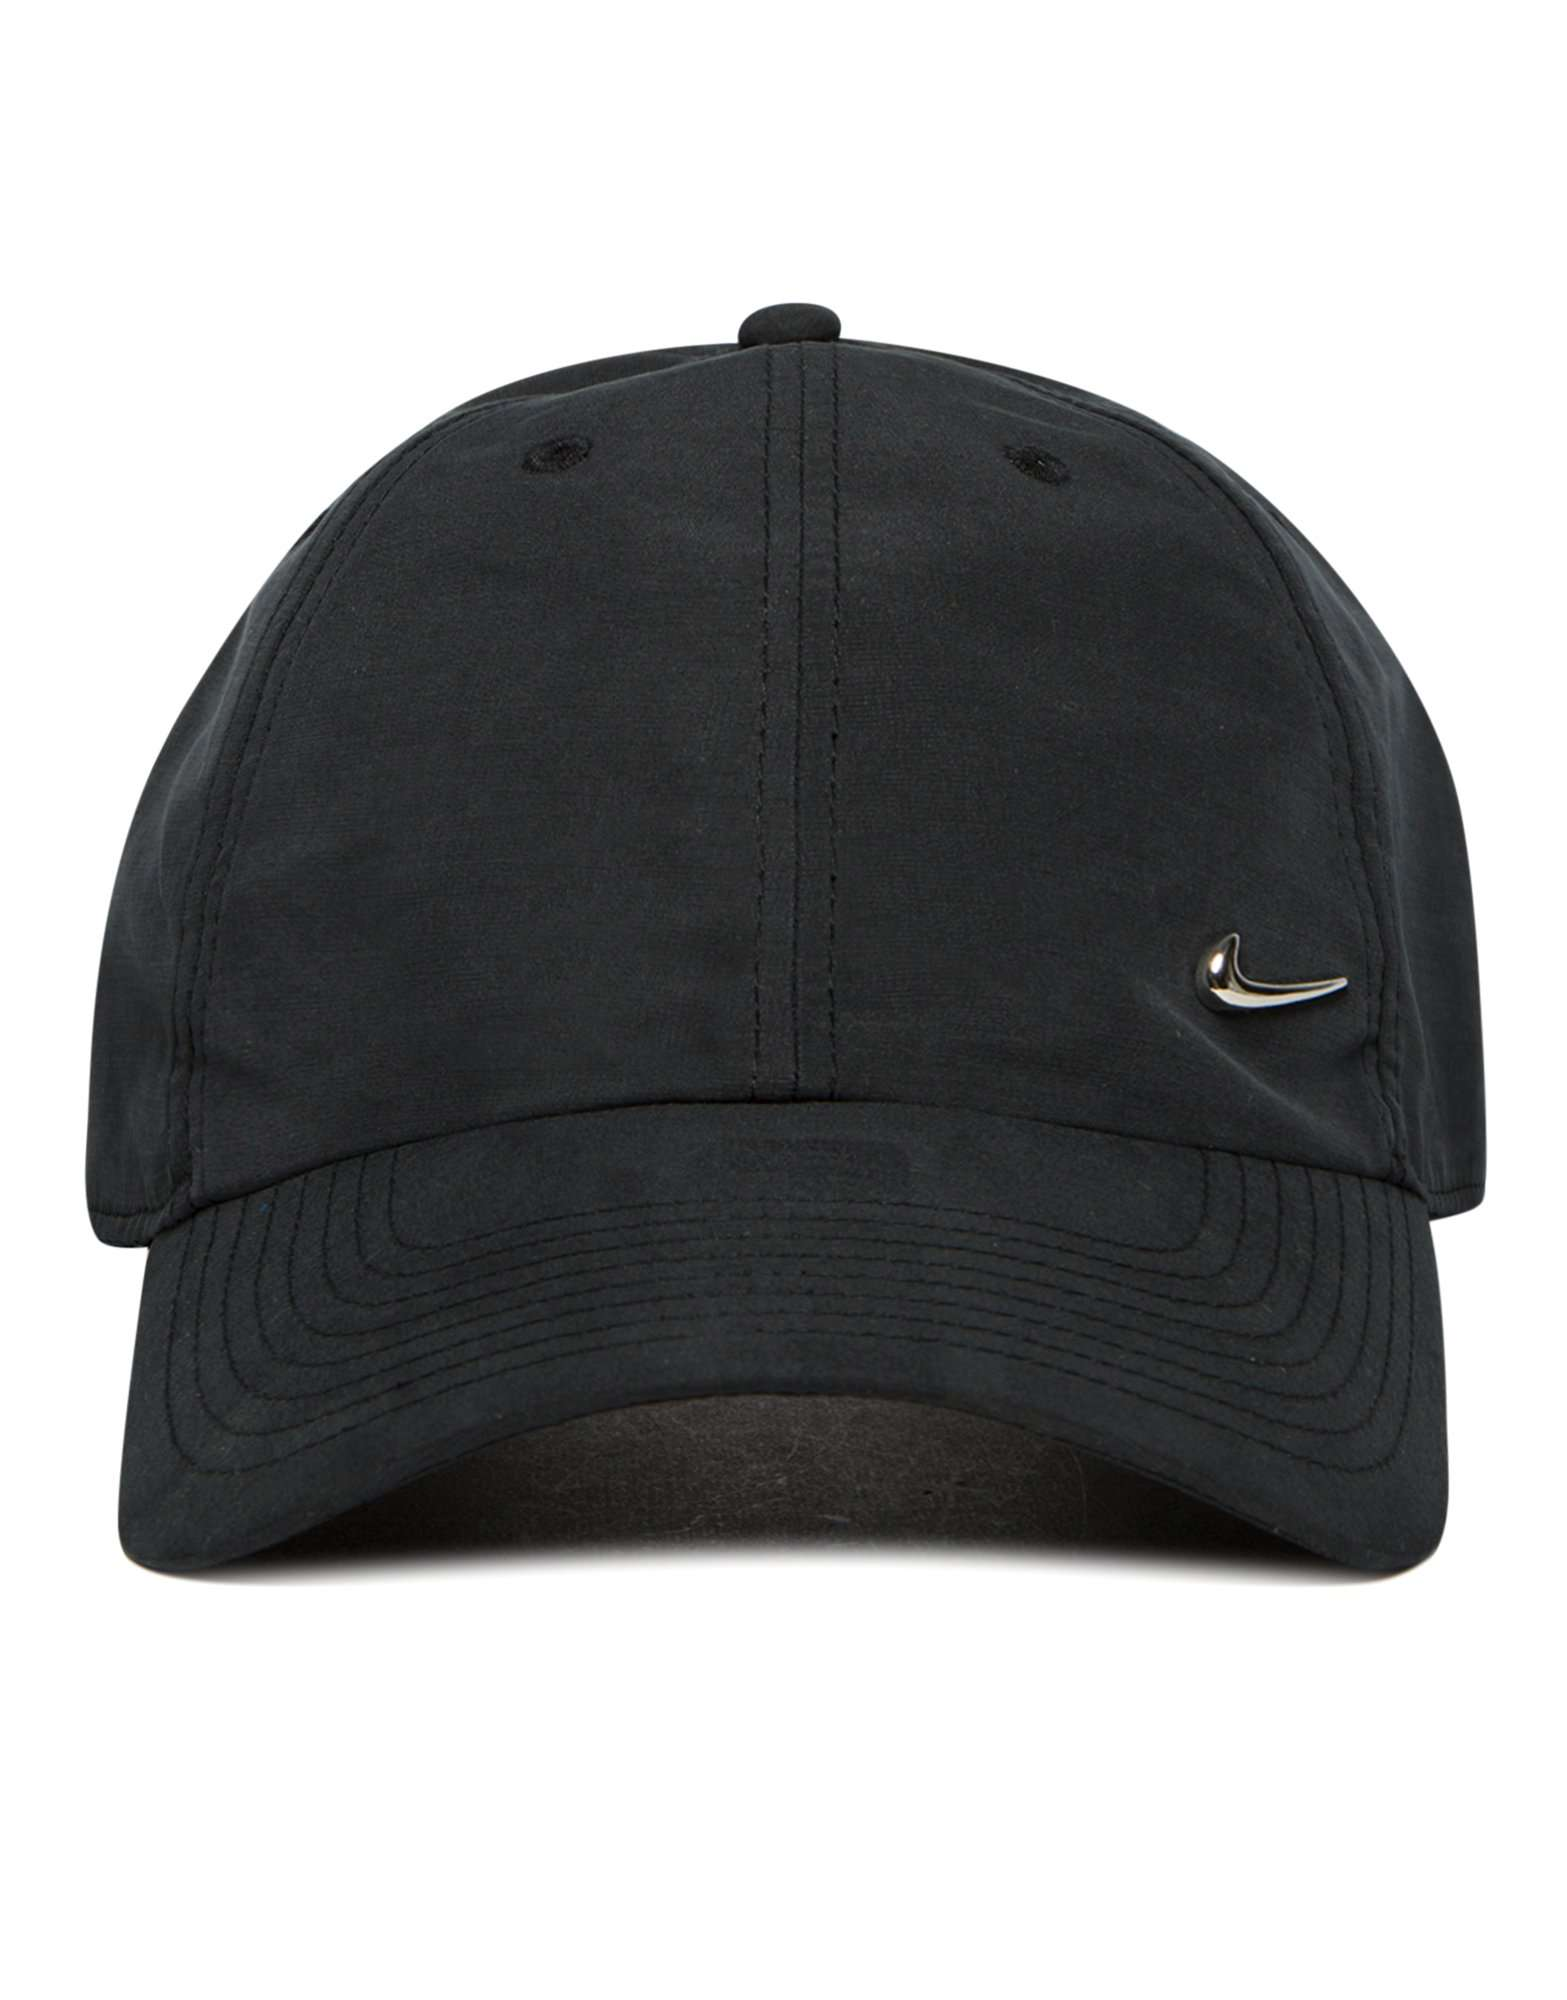 nike side swoosh cap jd sports. Black Bedroom Furniture Sets. Home Design Ideas